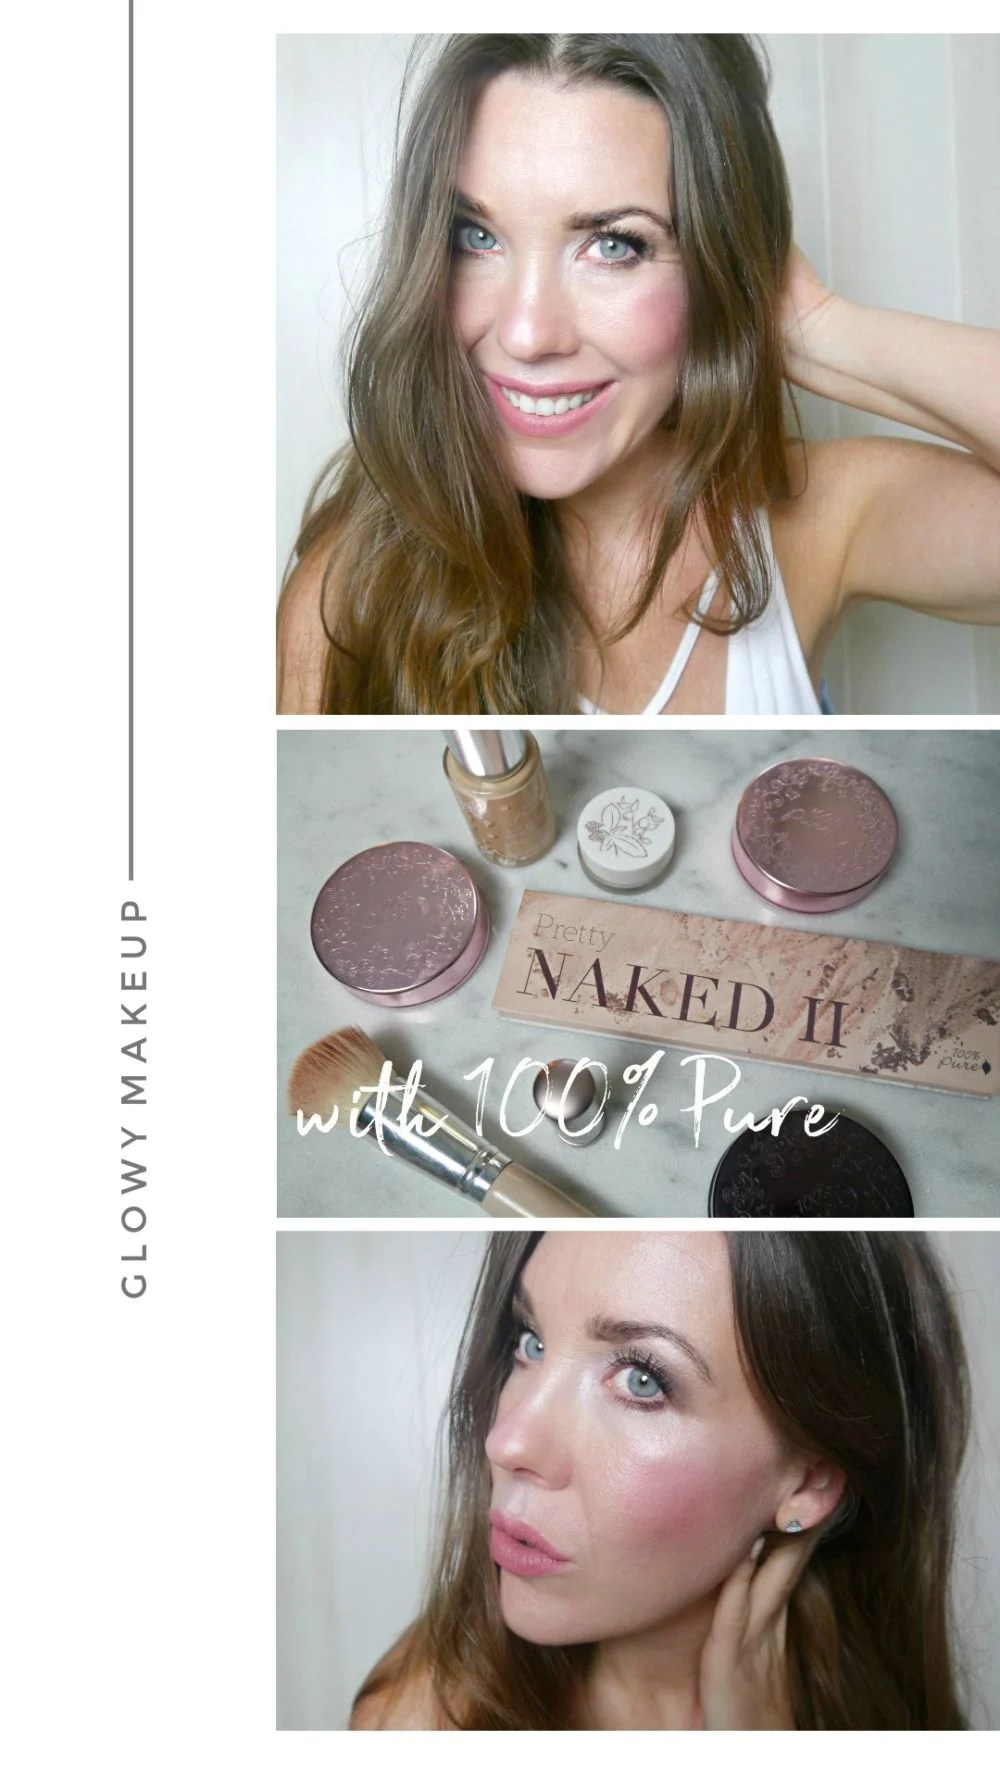 Glowy Makeup with 100% Pure